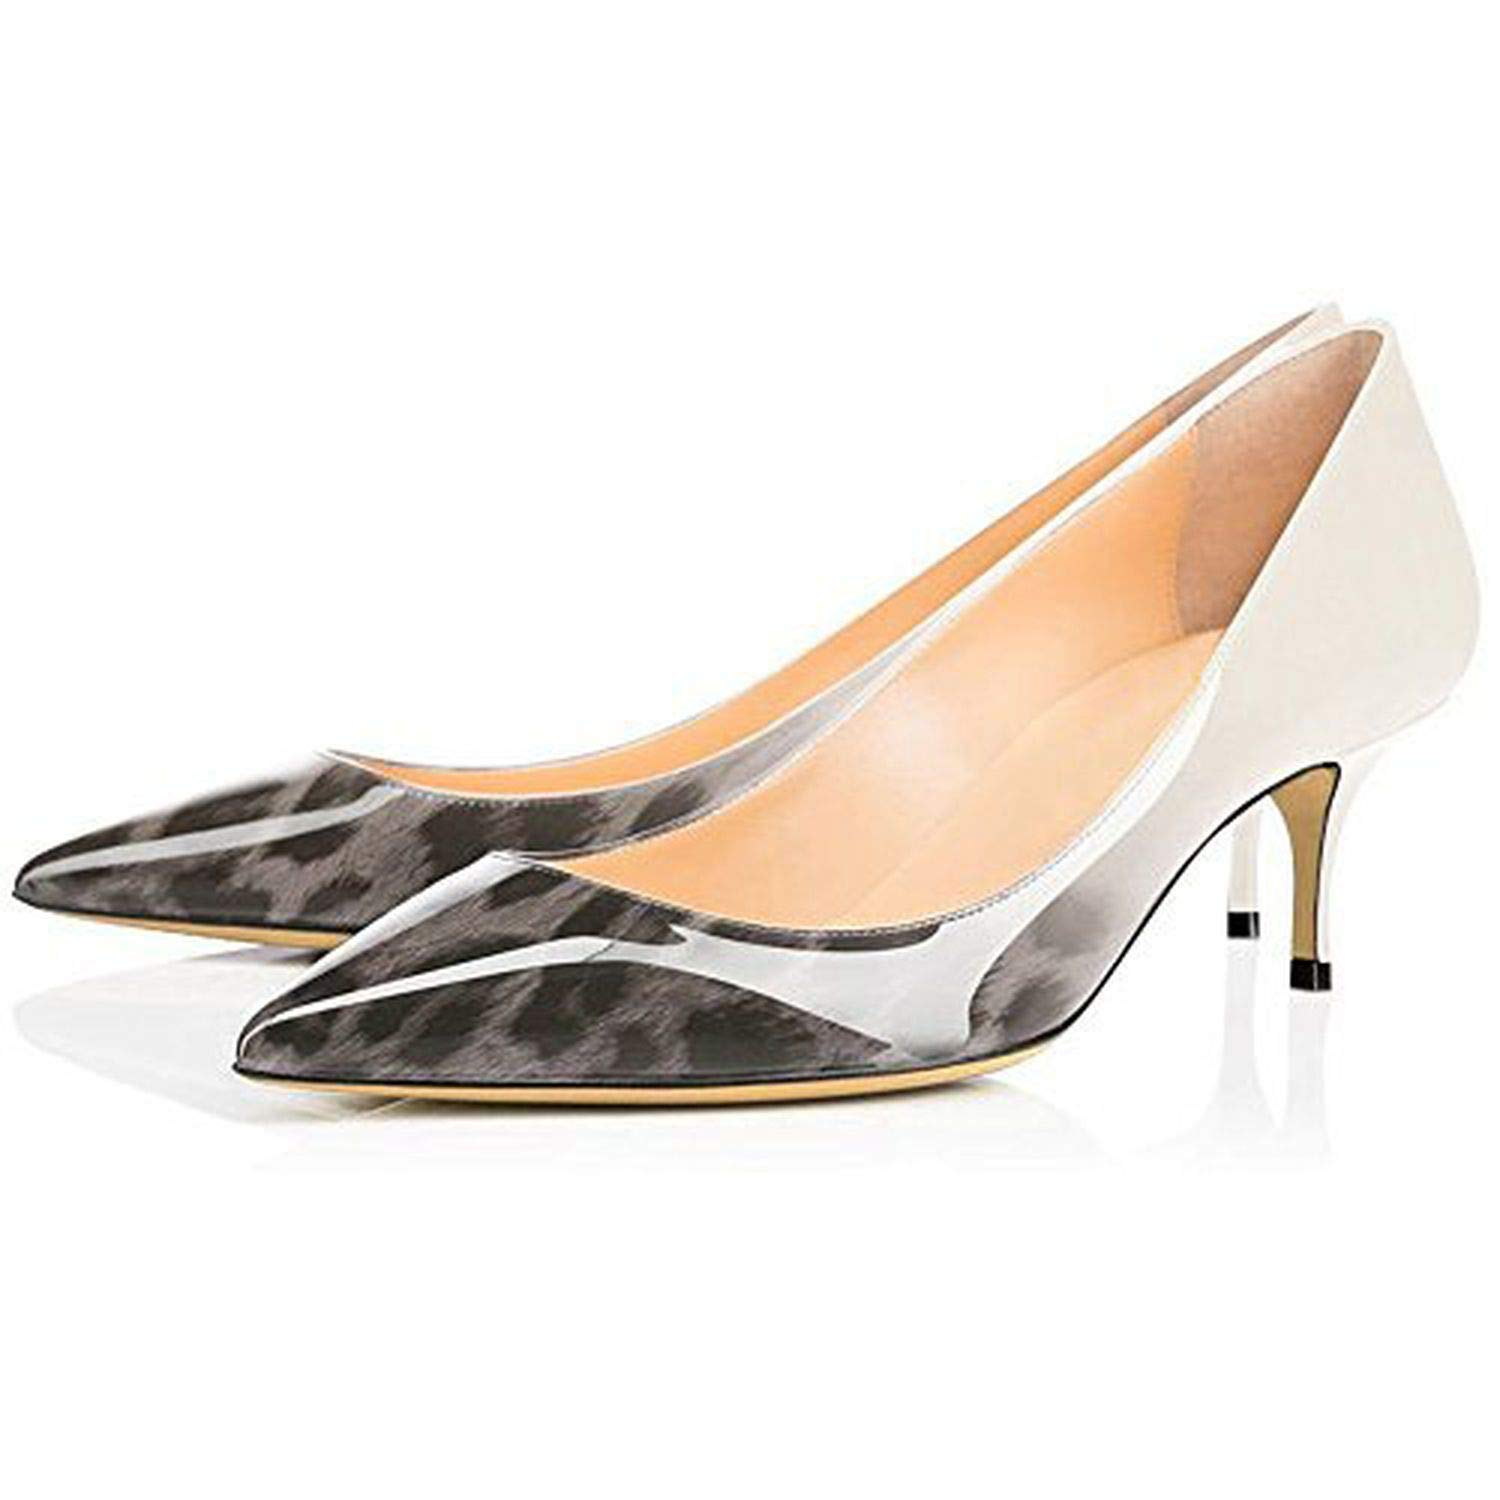 Gary Leopard Youthern Woman Heels Big Size Pumps shoes Sexy Pointed Toe High Heels Wedding Bridal shoes